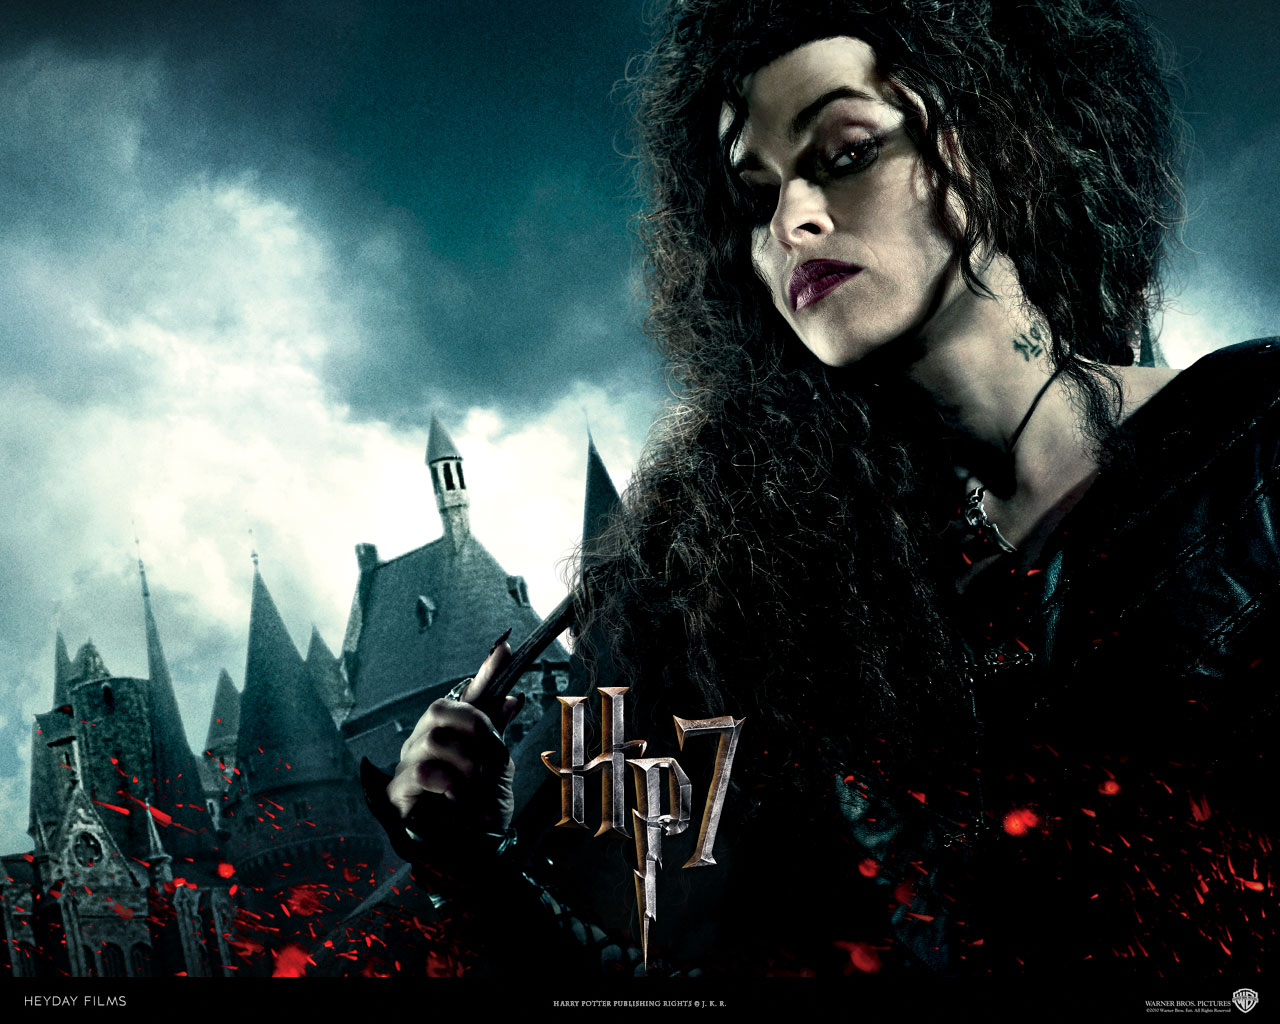 http://1.bp.blogspot.com/_f3cD0eoyGVI/TO5lXVTWTVI/AAAAAAAAALM/y7RCBVbFlmg/s1600/wallpaper-bellatrix-1280x1024.jpg